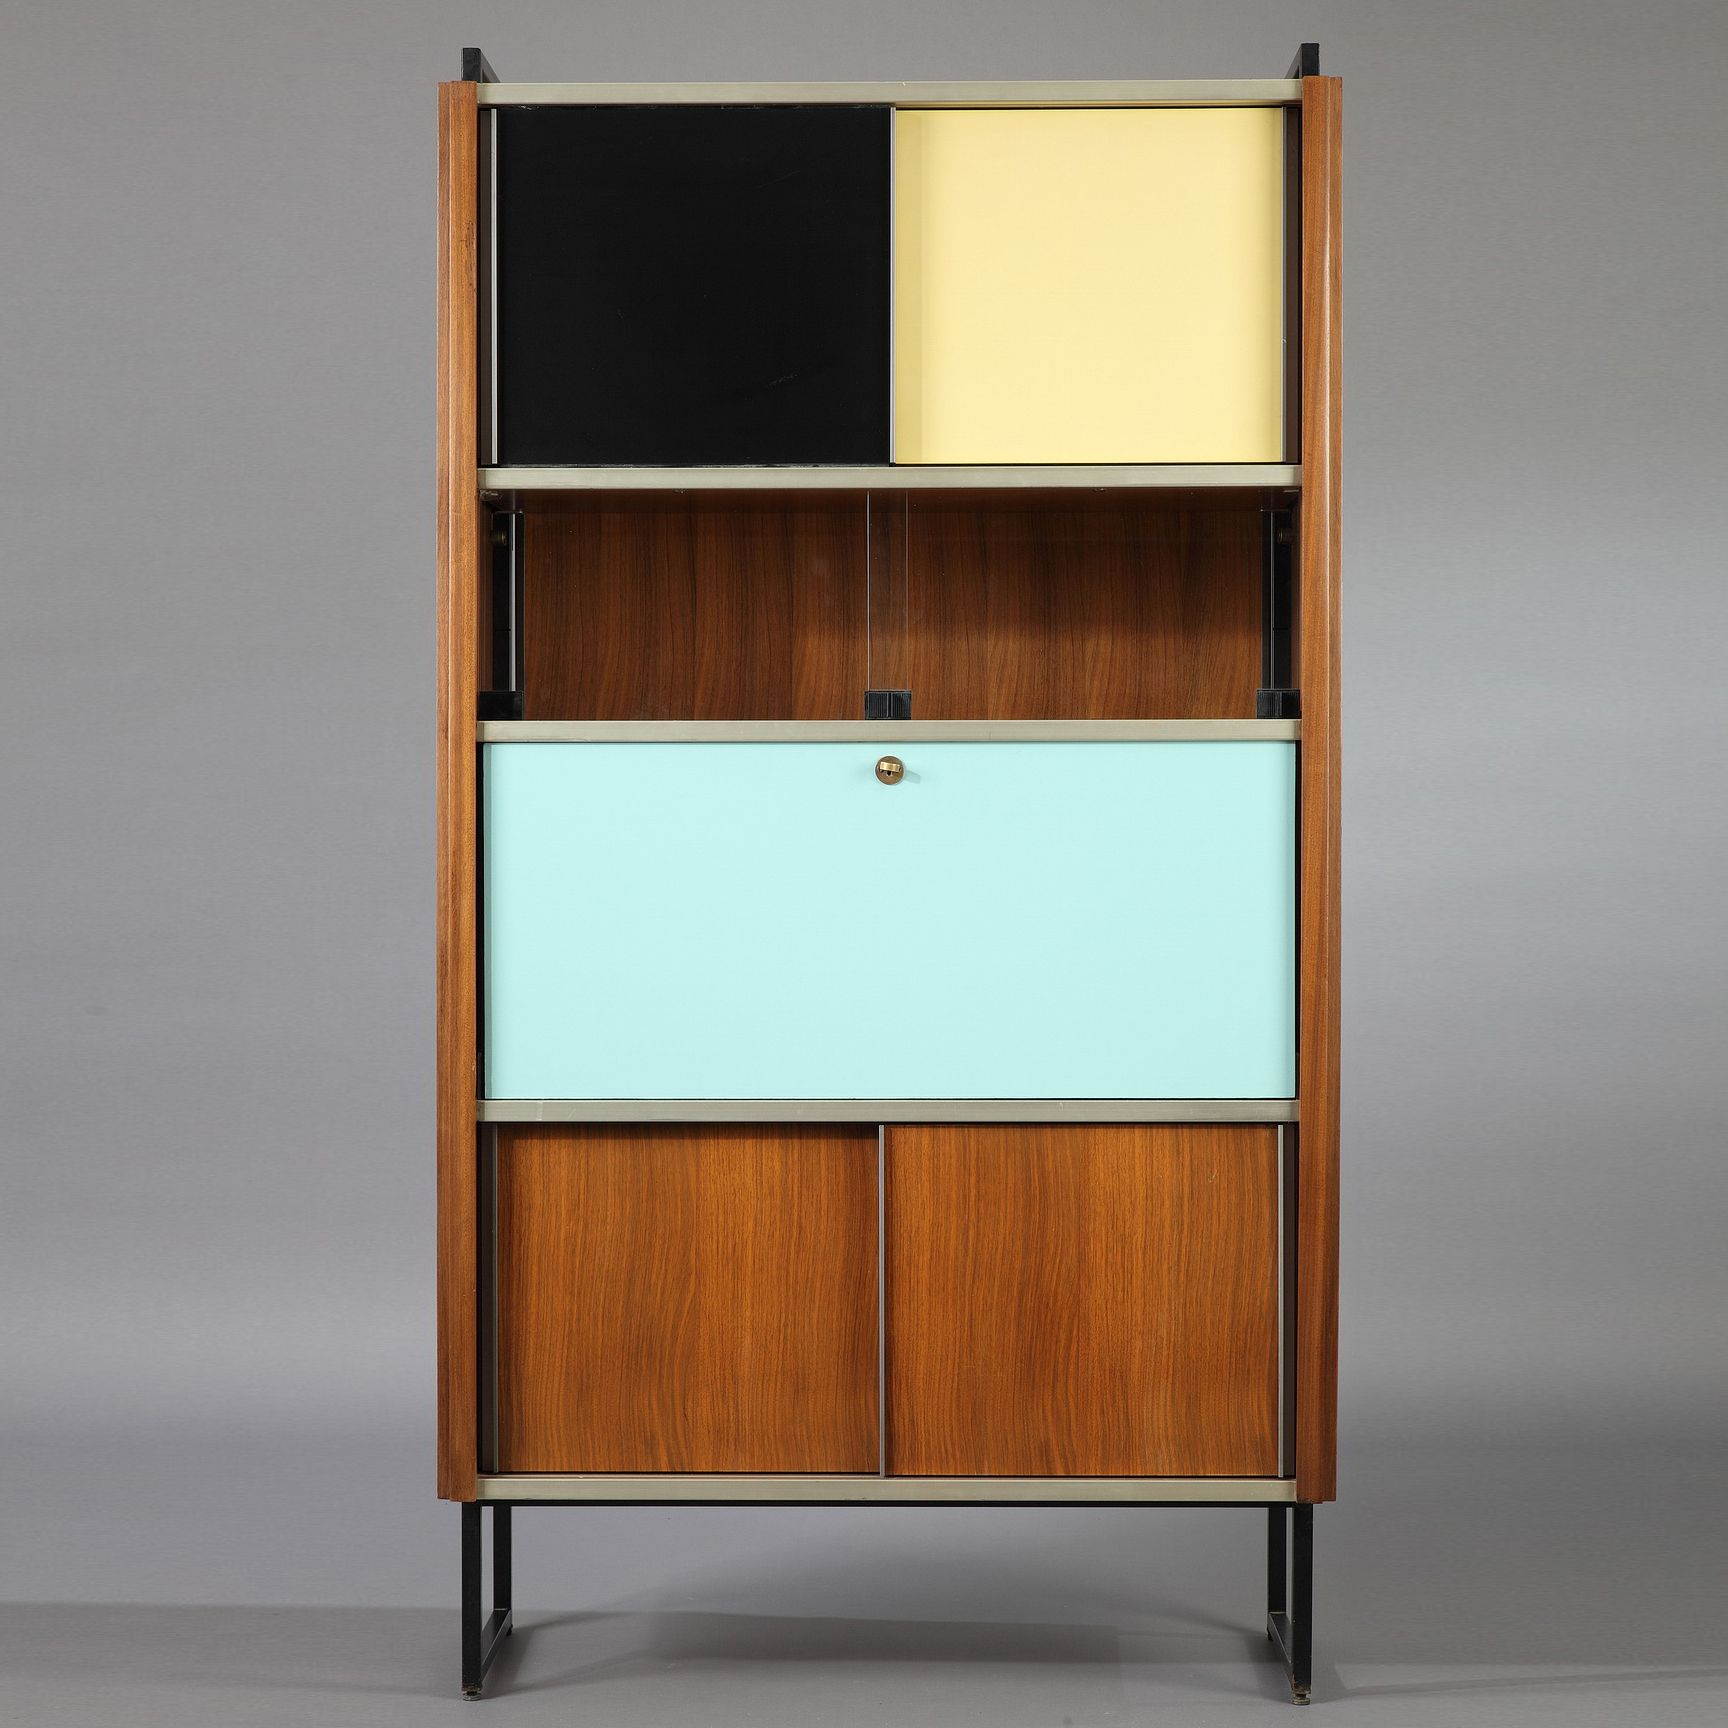 Efa Secretaire Bookcase In Rosewood Aluminium And Black Laquered Metal By Georges Frydman